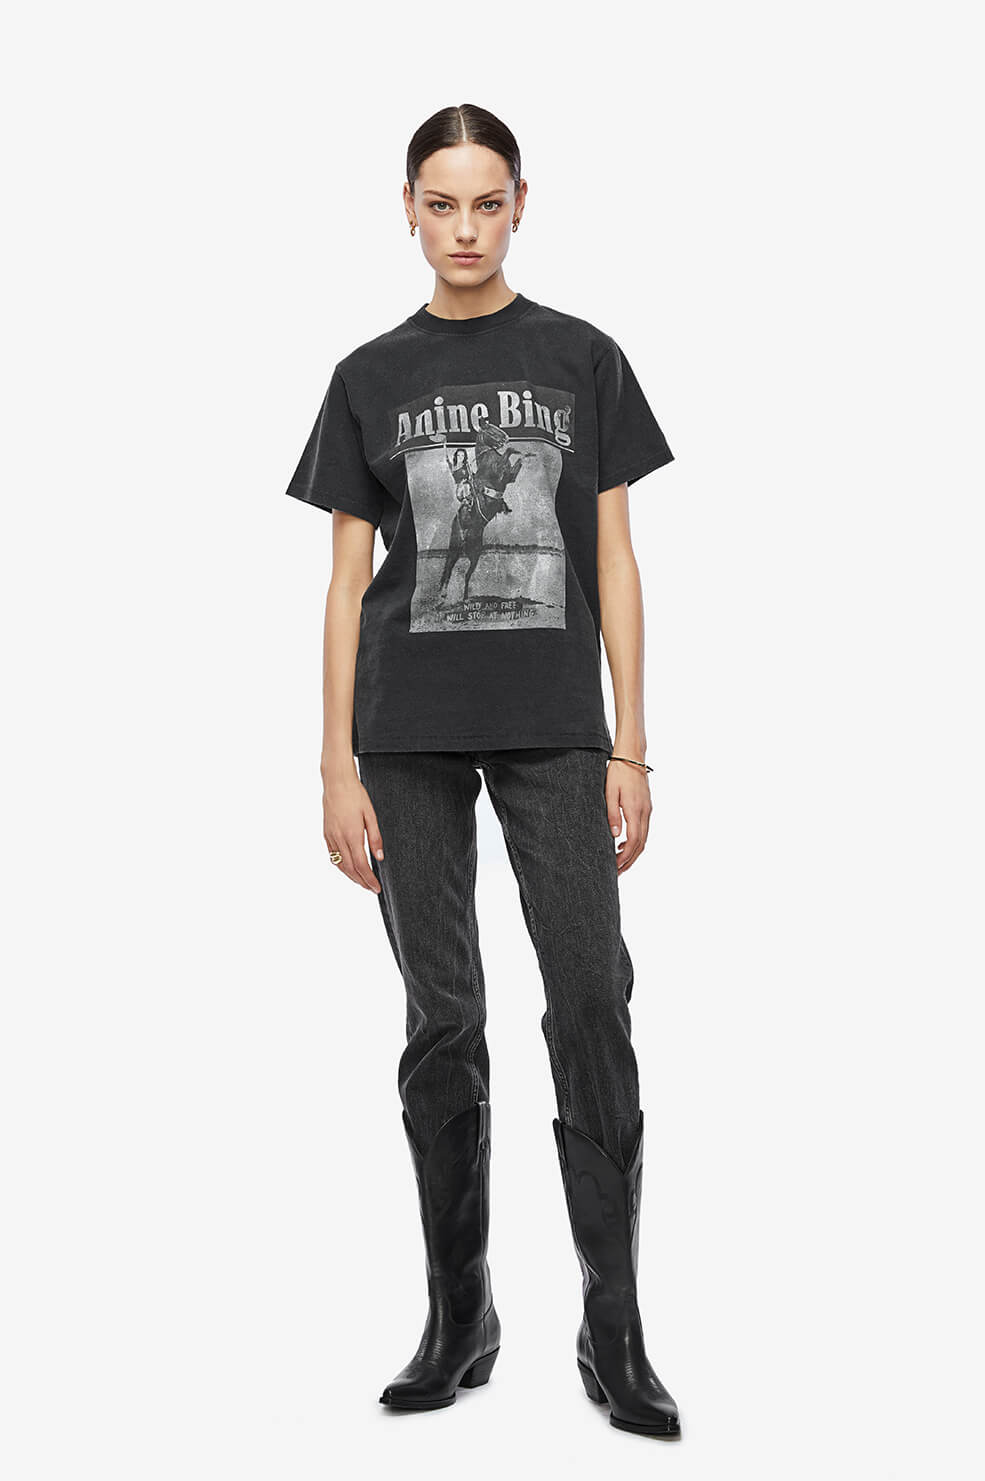 ANINE BING Lili Tee Wild And Free - Washed Black